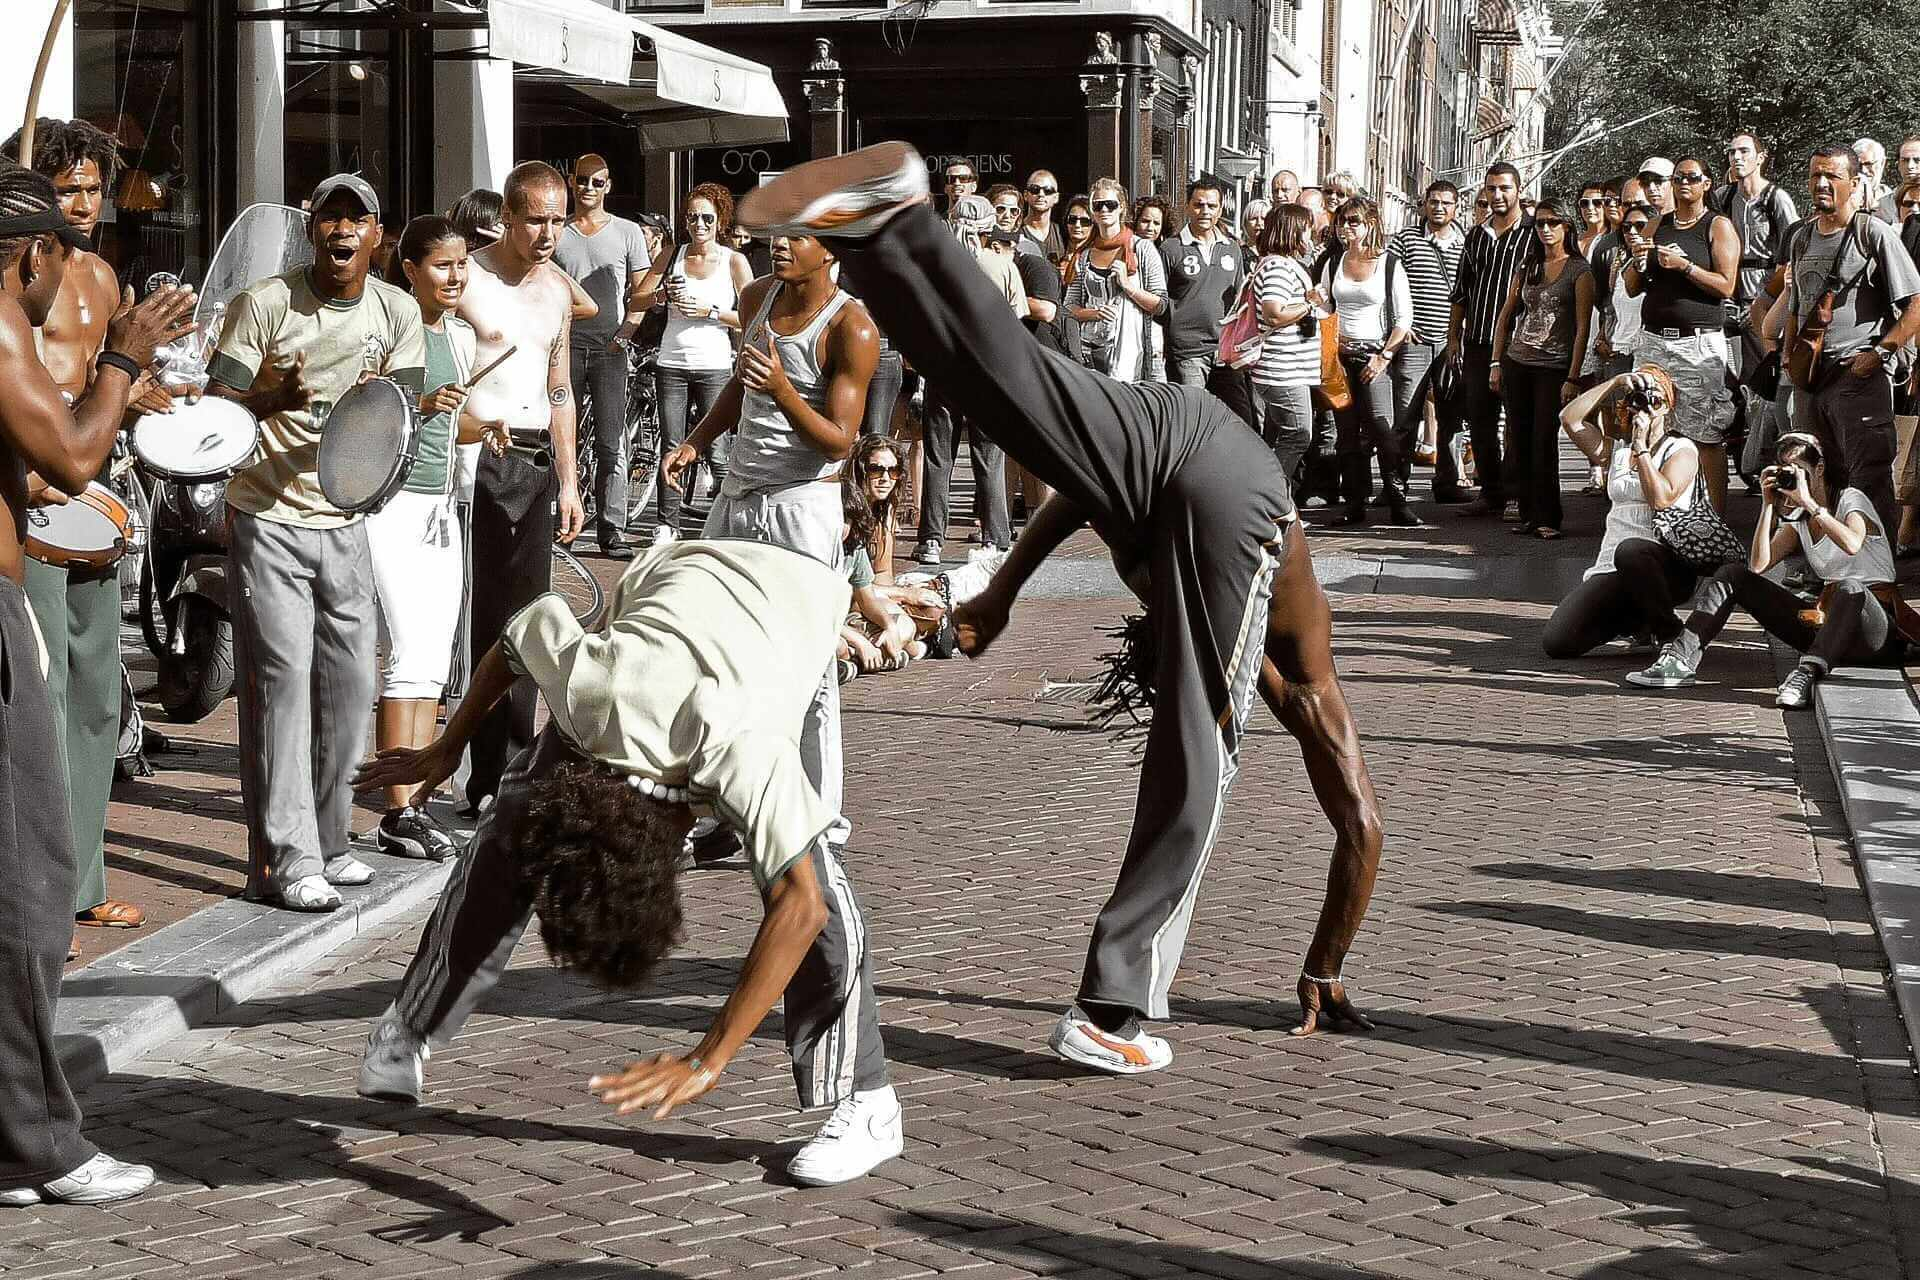 From urban dance to Olympic sport: Why you should learn breaking in 2021